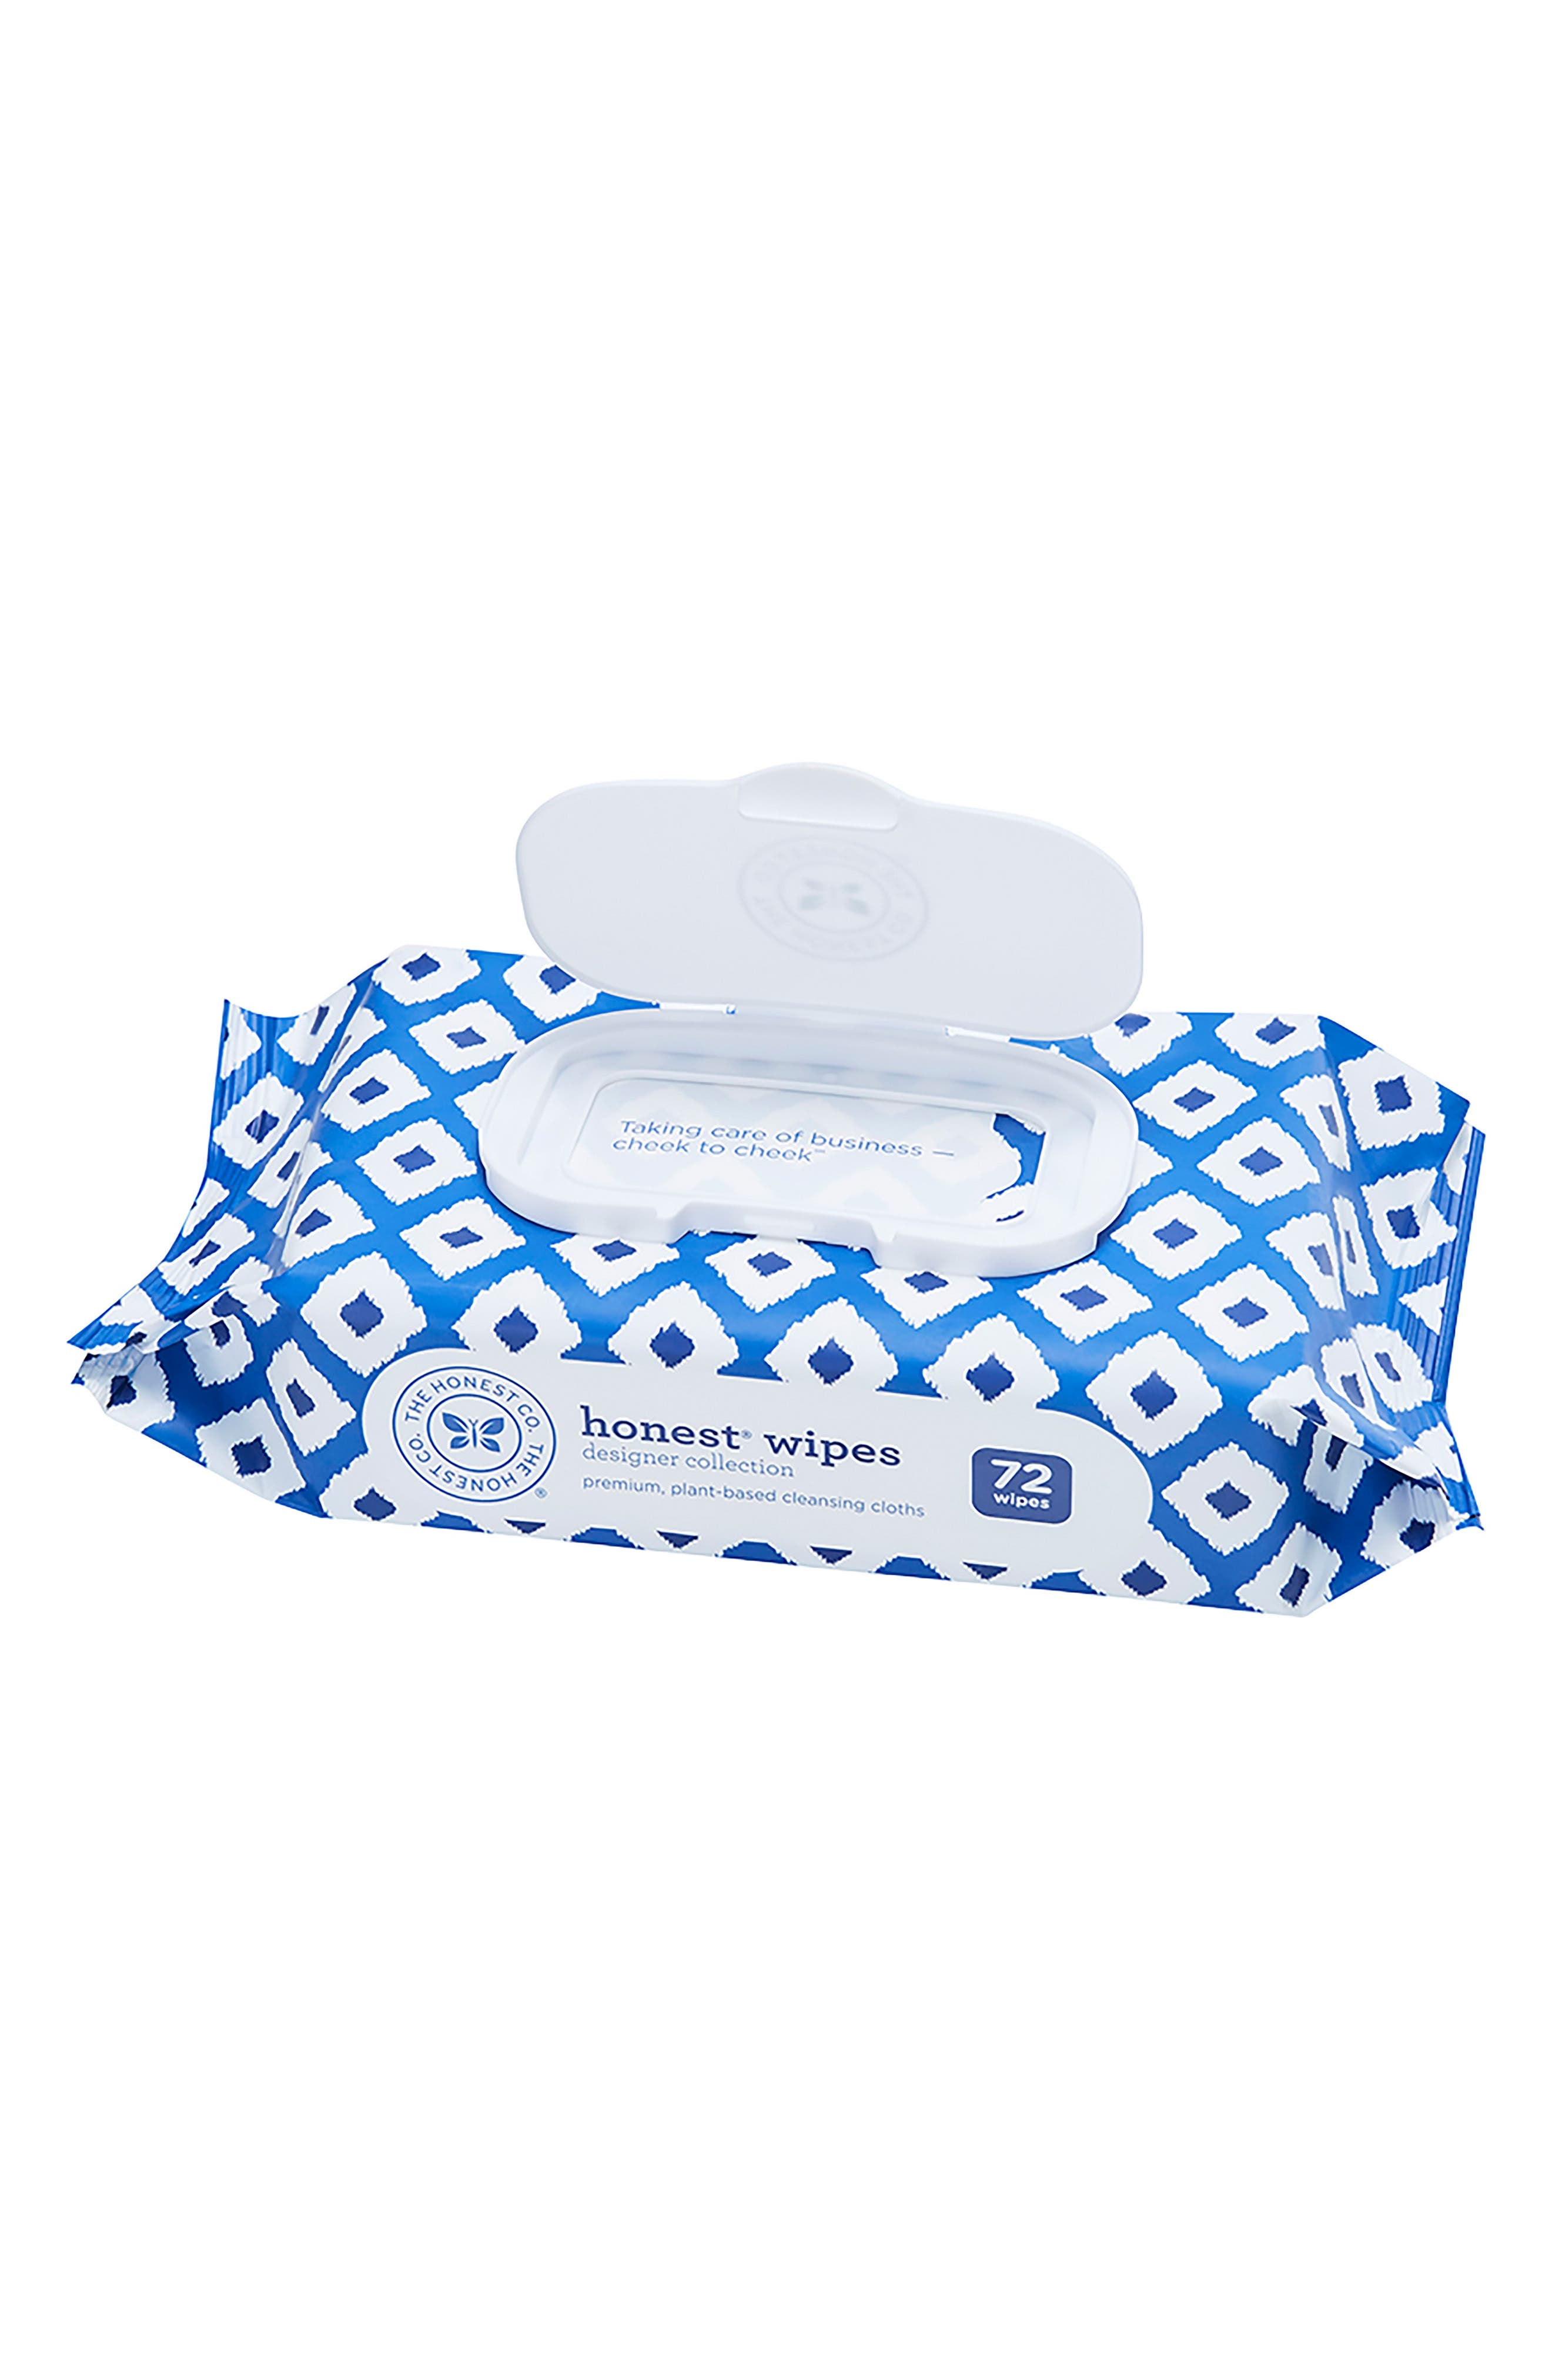 Main Image - The Honest Company Designer Collection Wipes